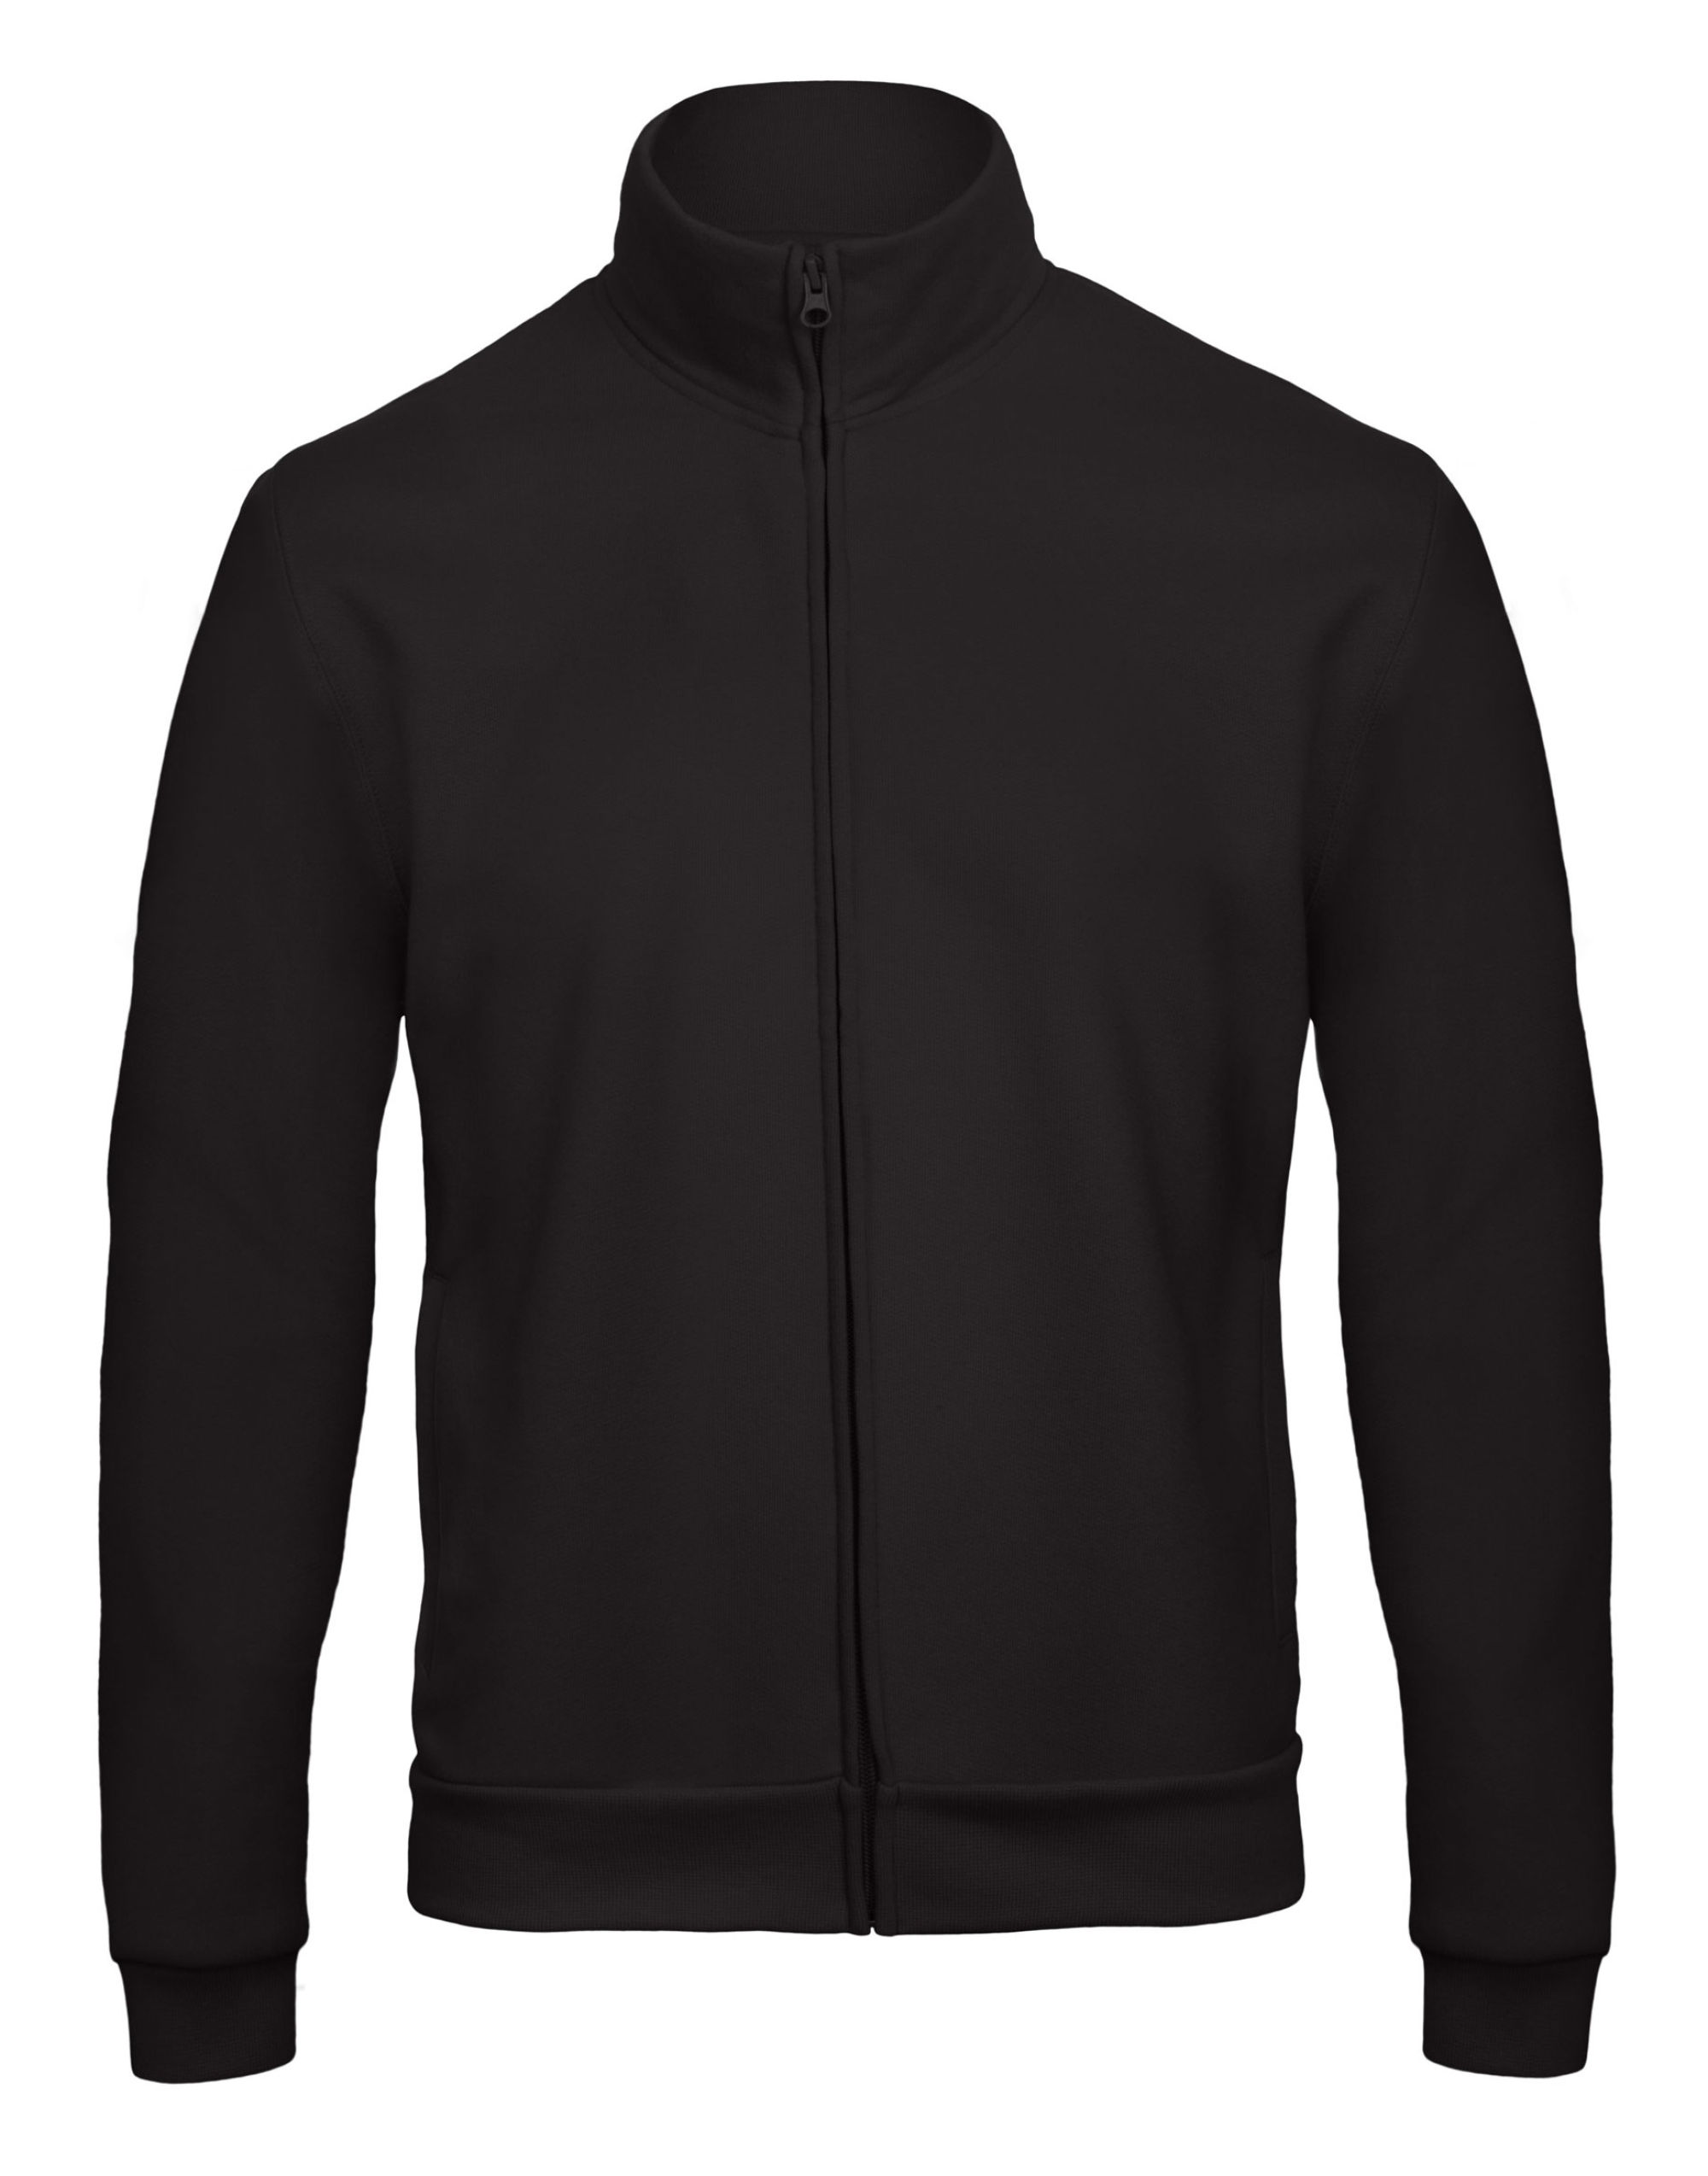 B&c Id206 50/50 Full Zip Sweat Jacket